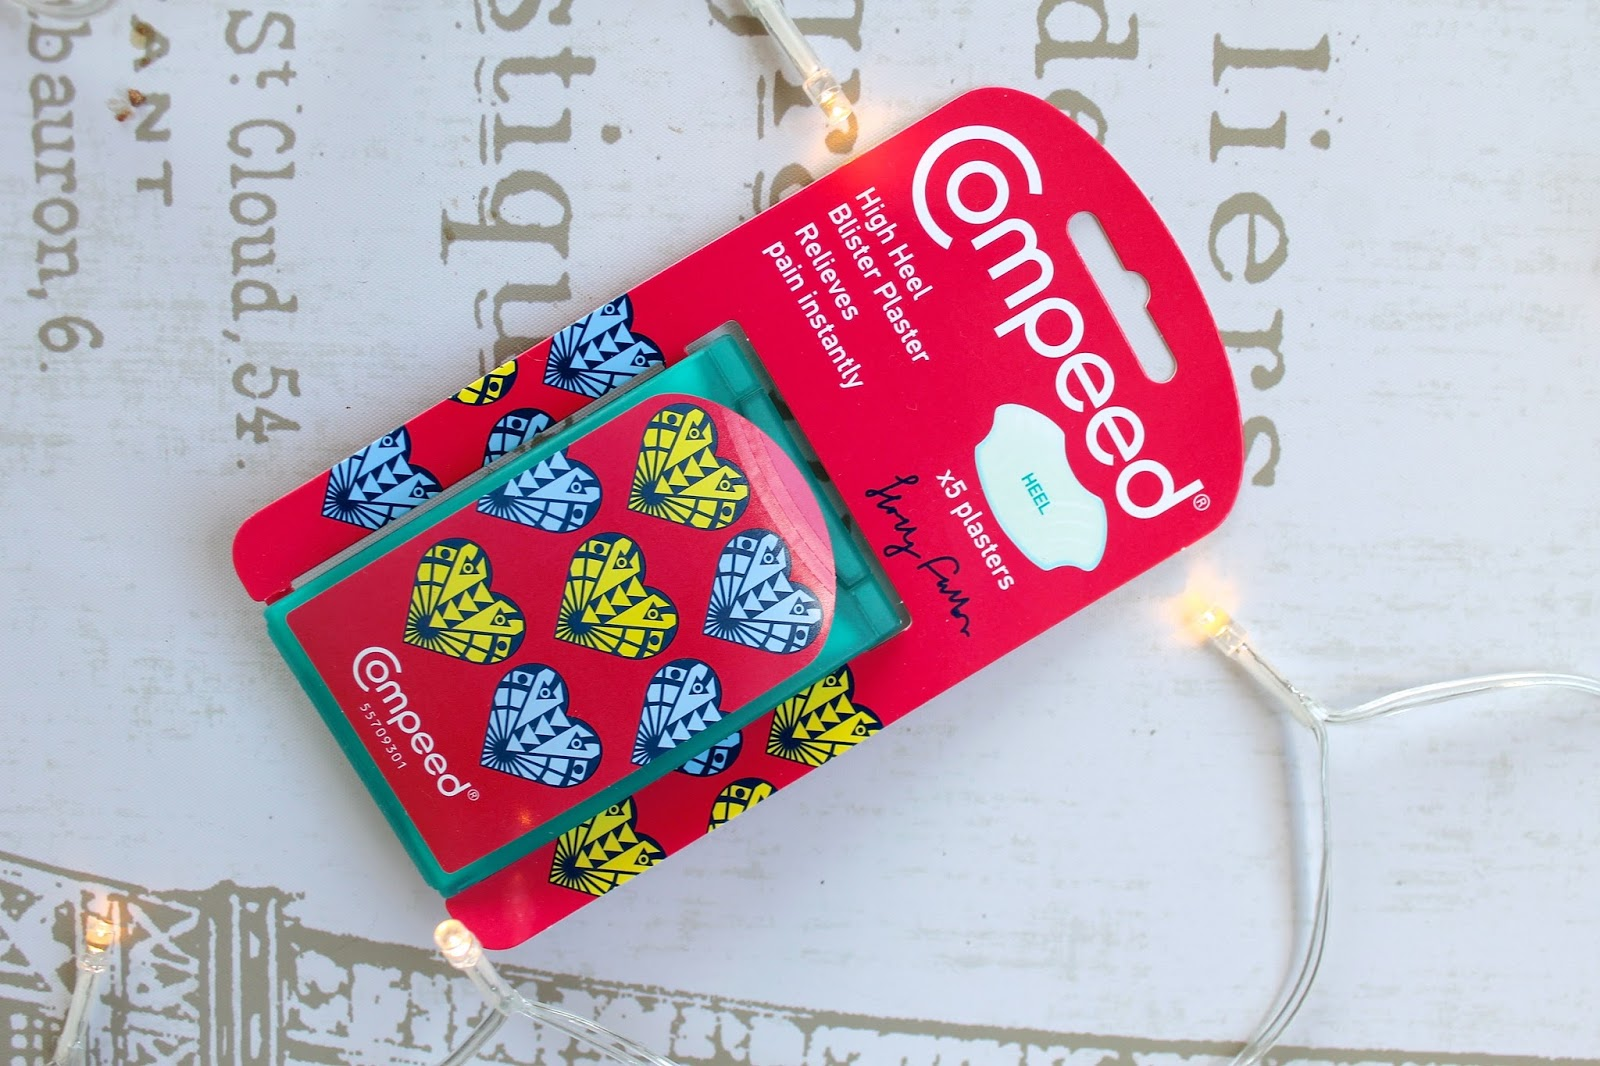 HOLLY FULTON COMPEED